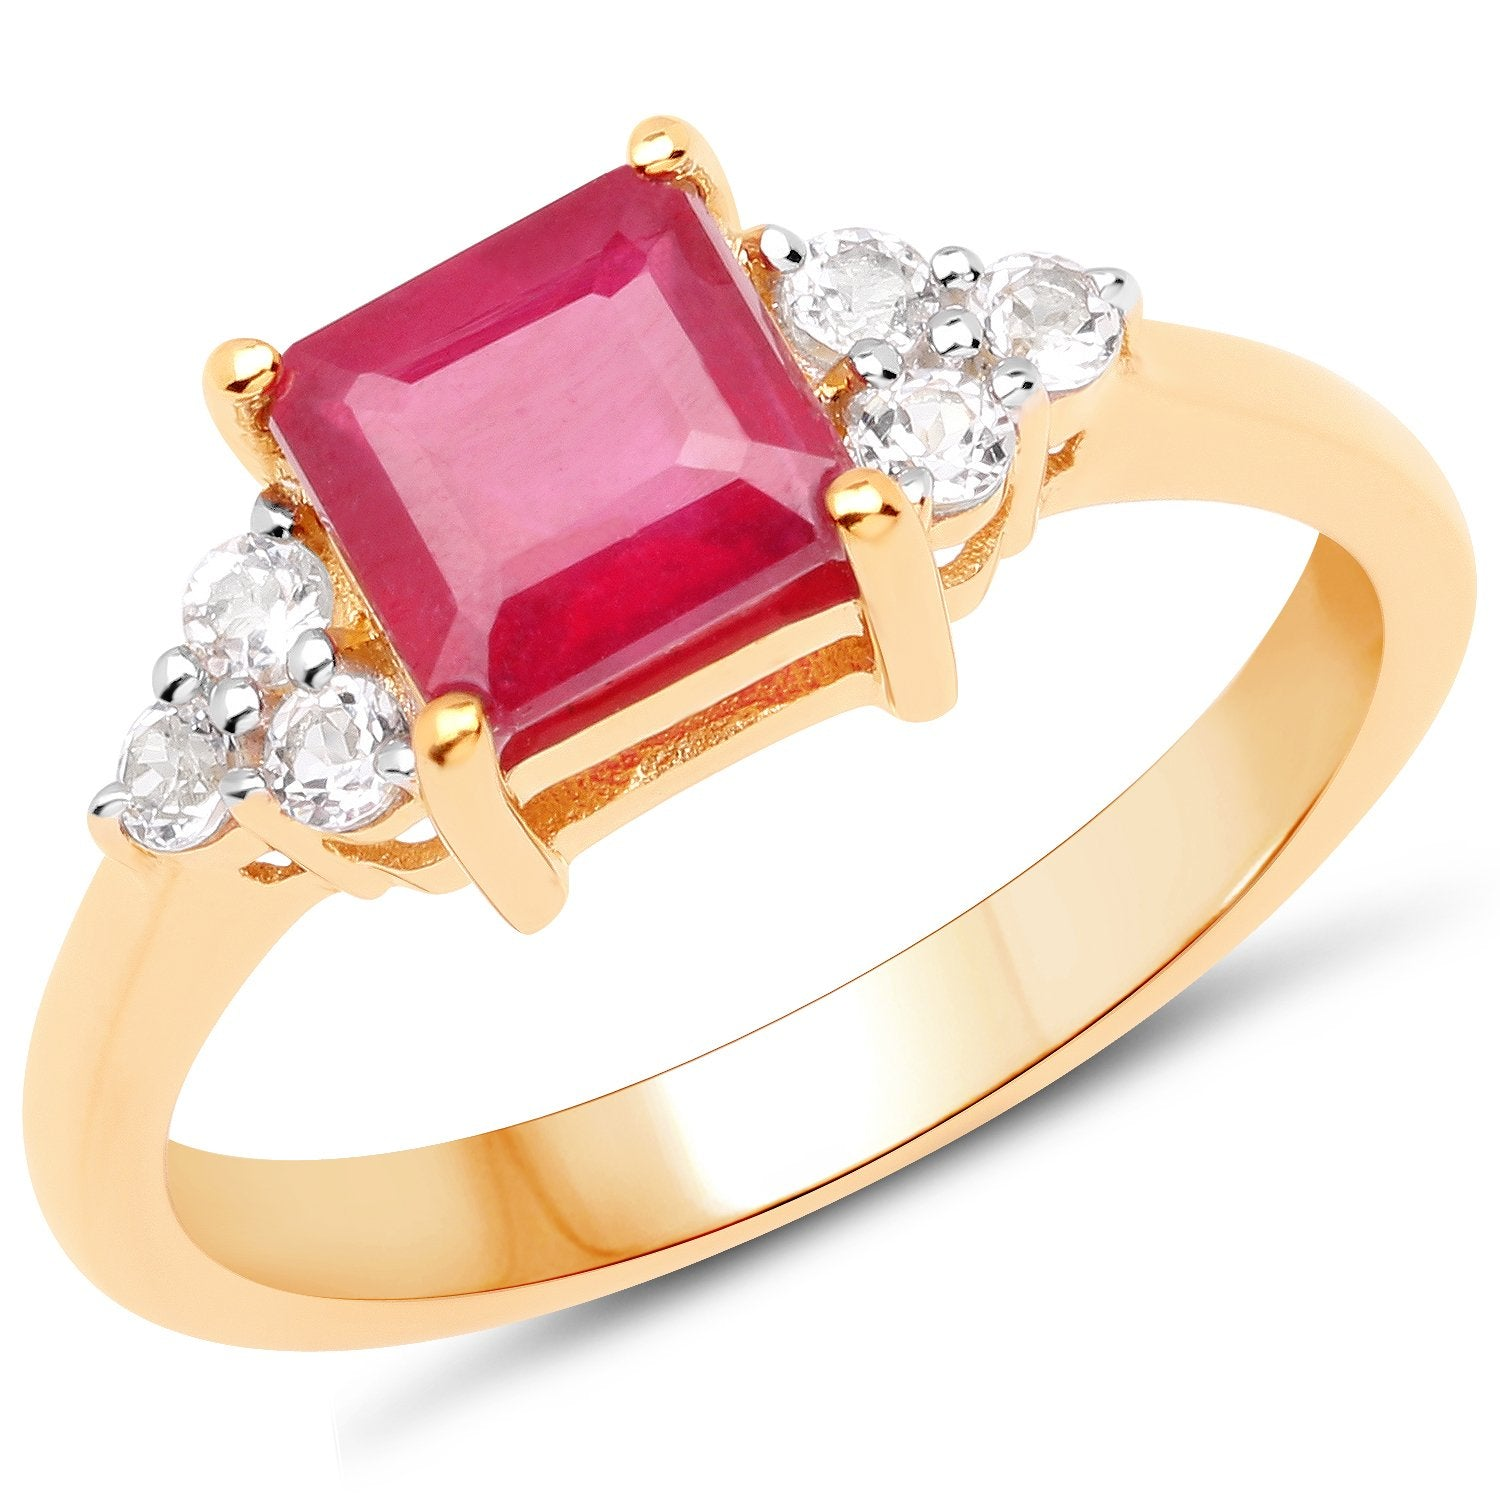 LoveHuang 1.79 Carats Genuine Ruby and White Topaz Square Ring Solid .925 Sterling Silver With 18KT Yellow Gold Plating